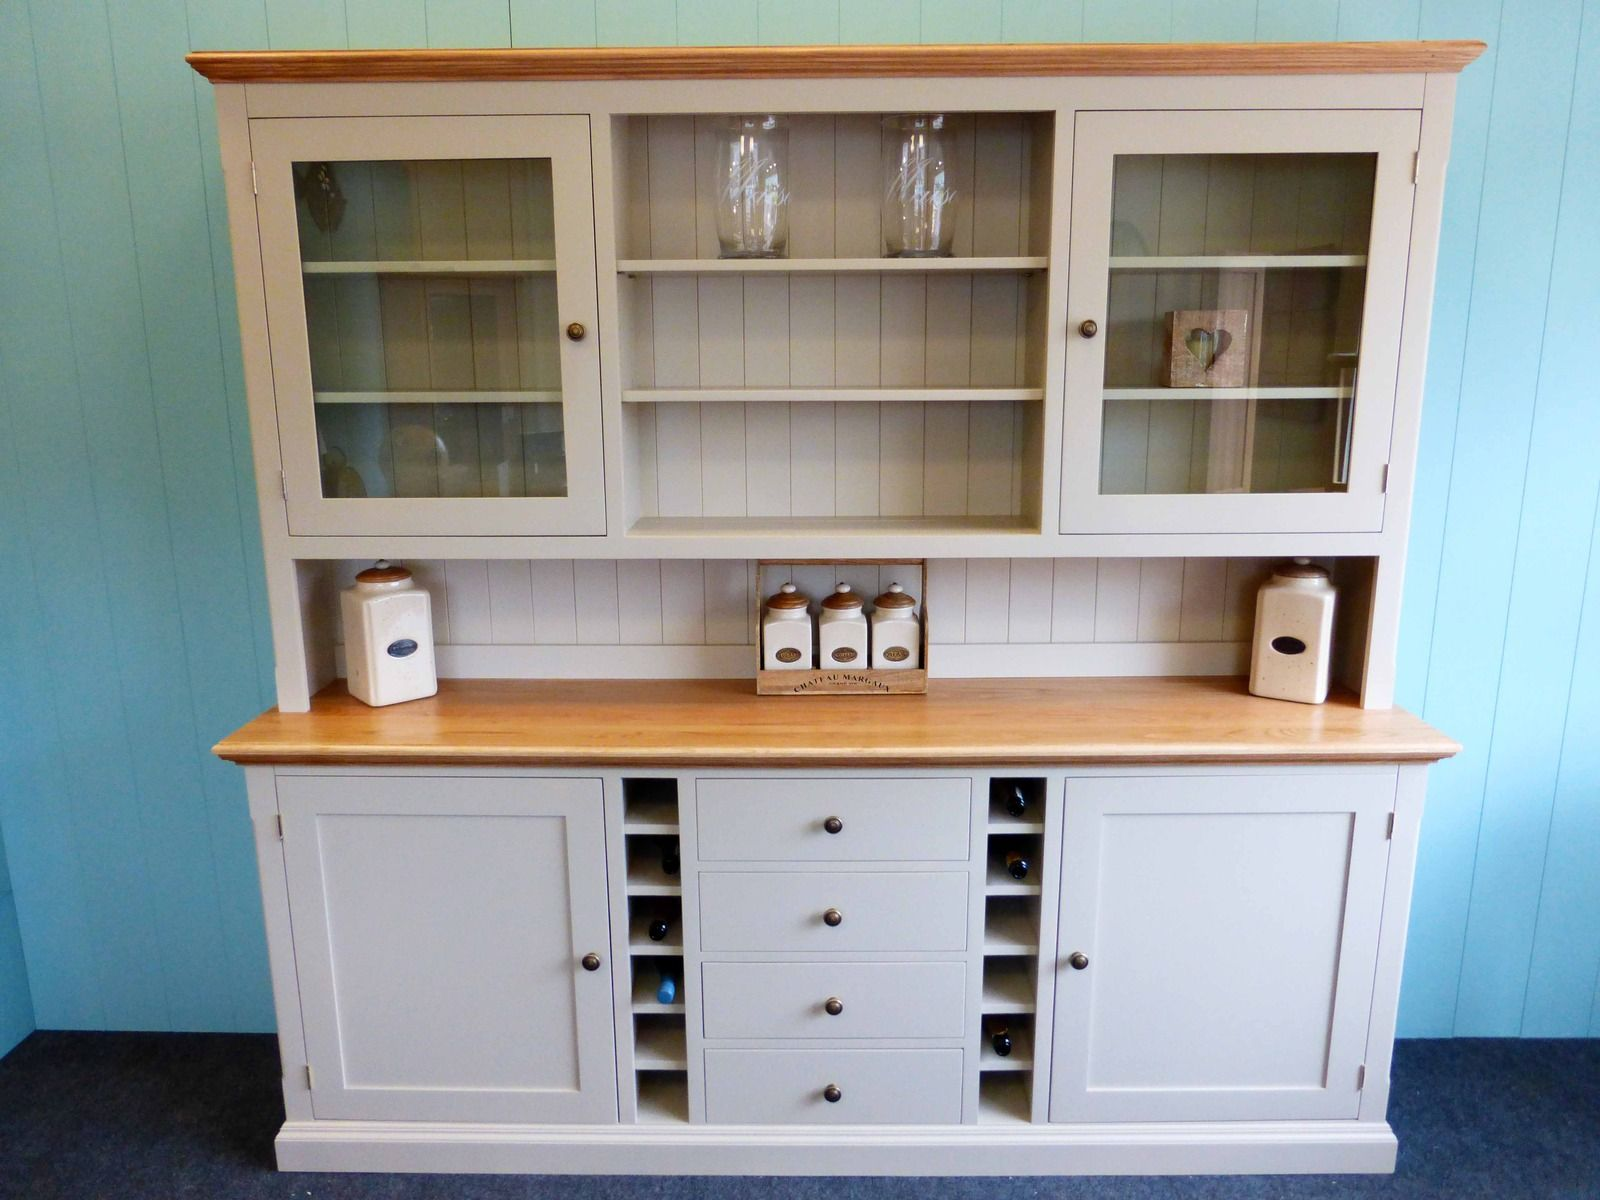 Bespoke Painted Dresser With Wine Rack   Bespoke Kitchen And Dining Room  Furniture   Pine Shop